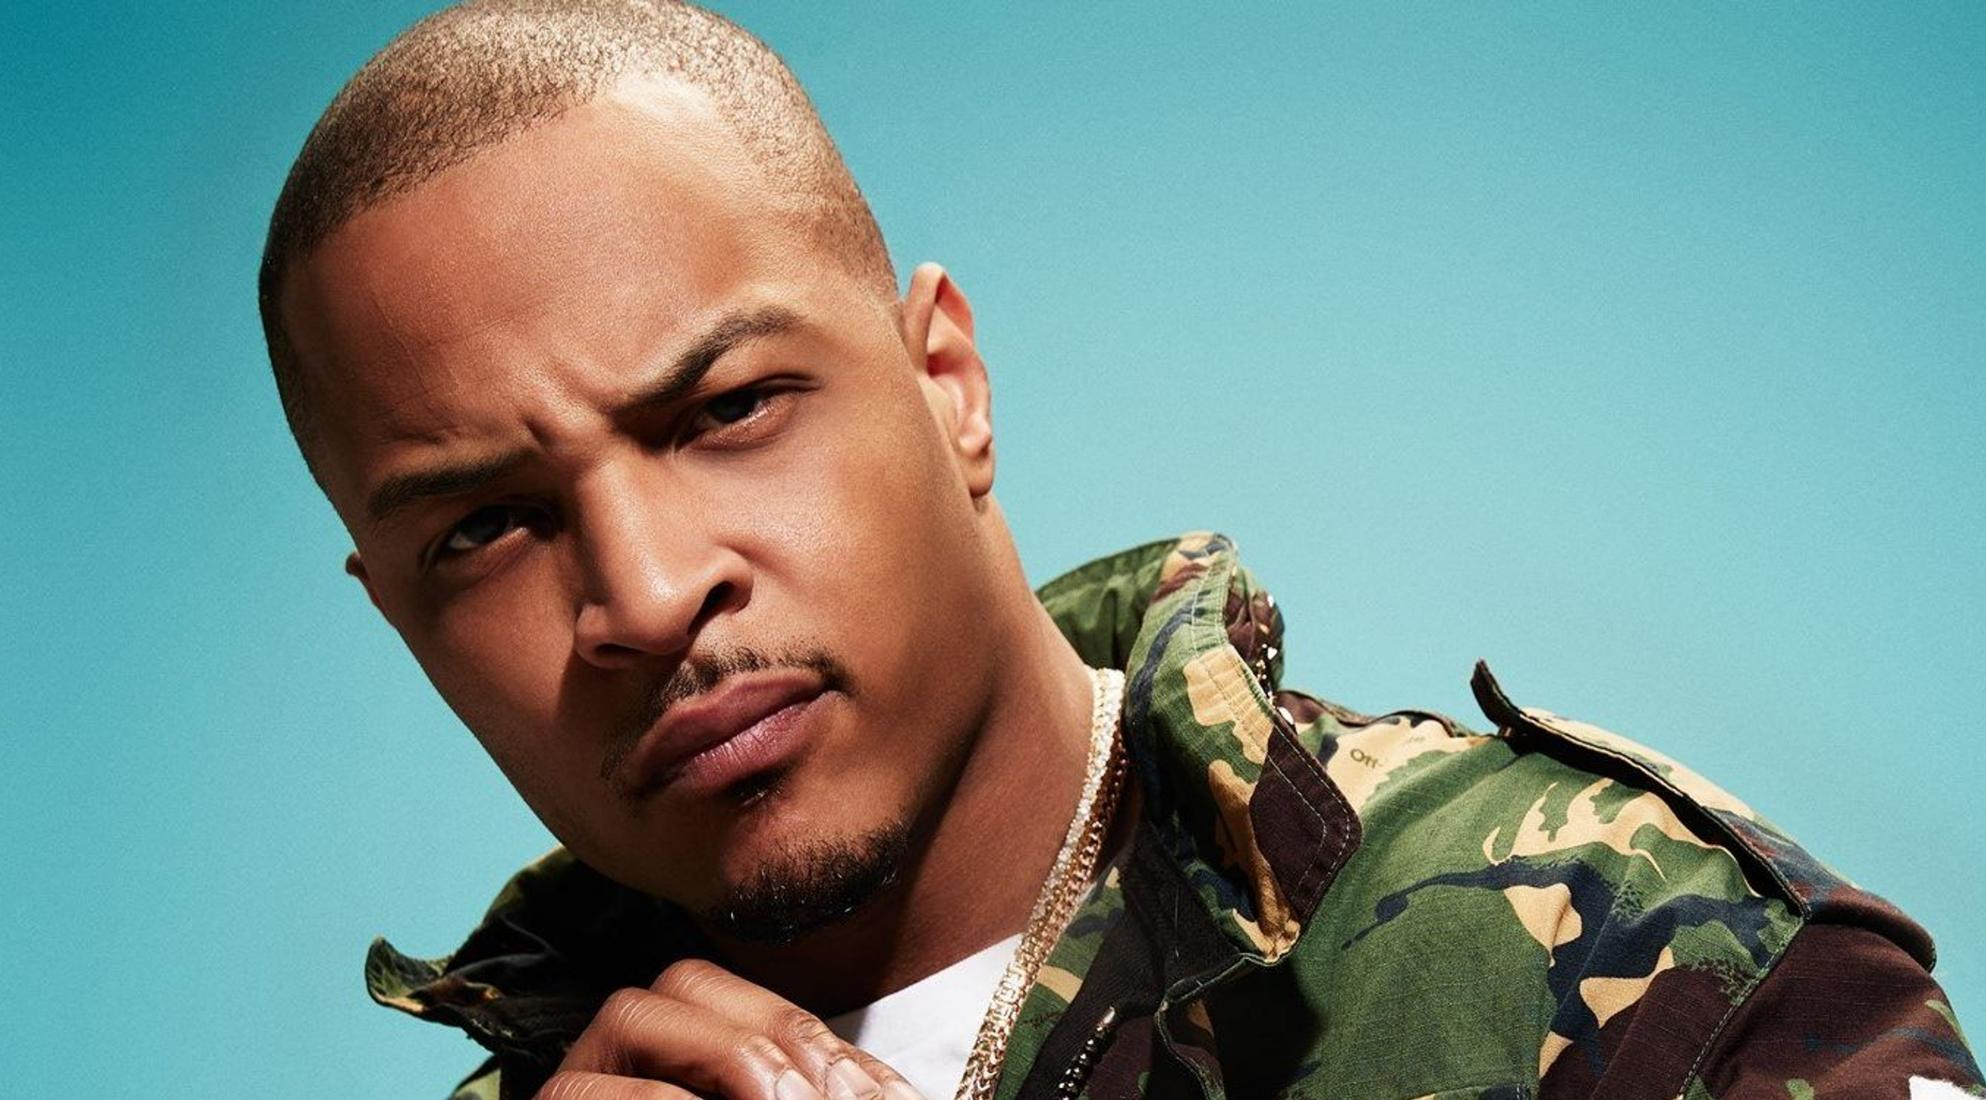 T.I. Gets Slammed After Inviting This Rapper On His Podcast